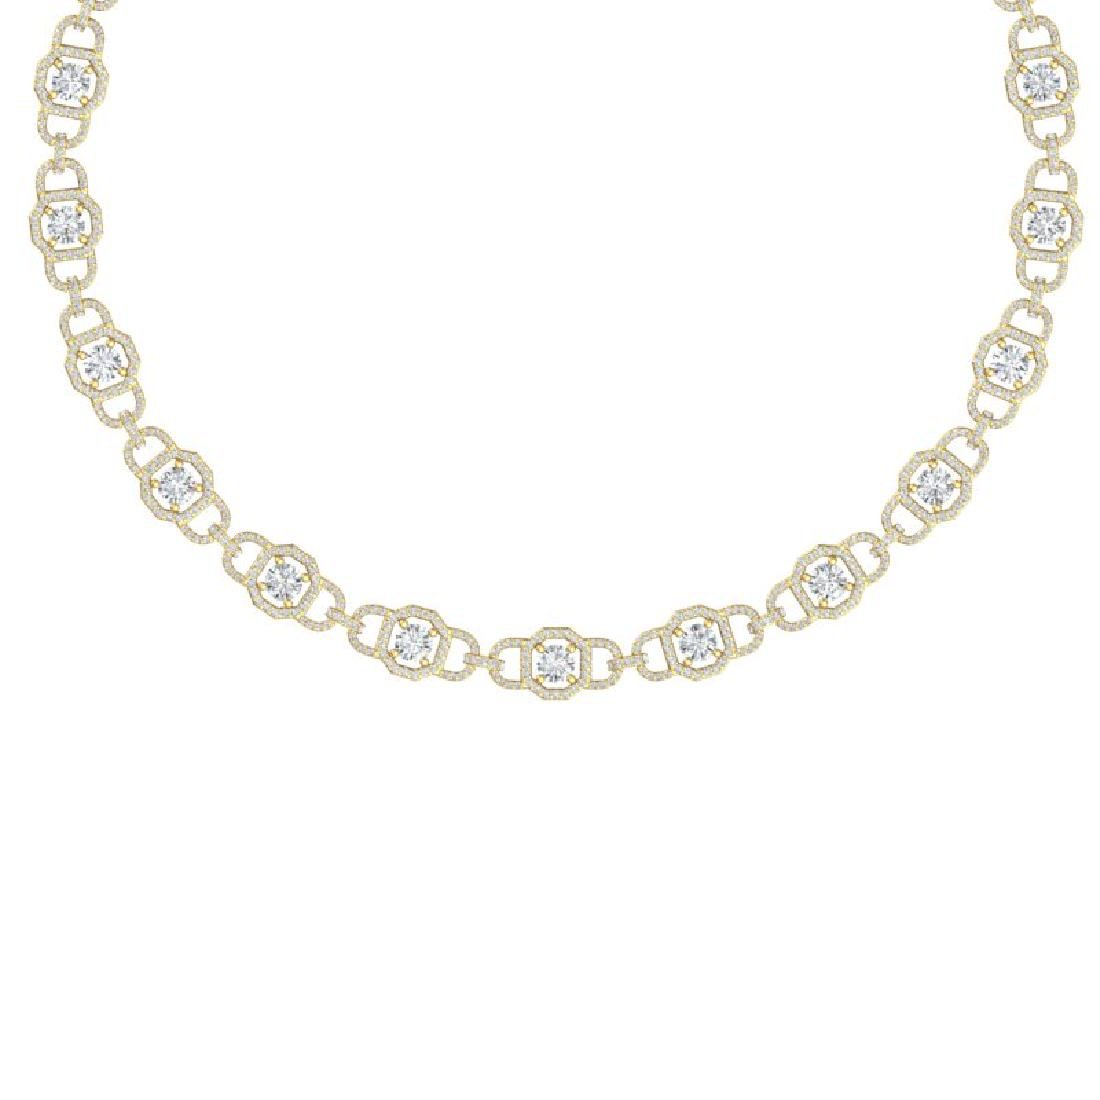 25 CTW Certified SI/I Diamond Halo Necklace 18K Yellow